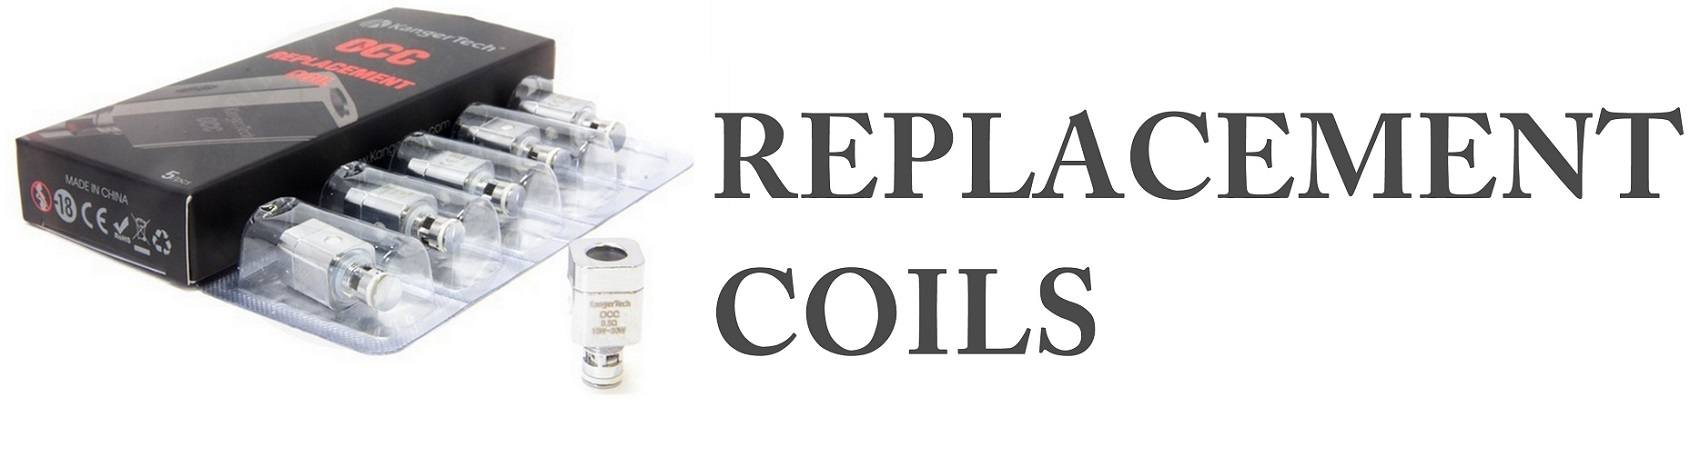 Replacement Attomizer Ecig Coils